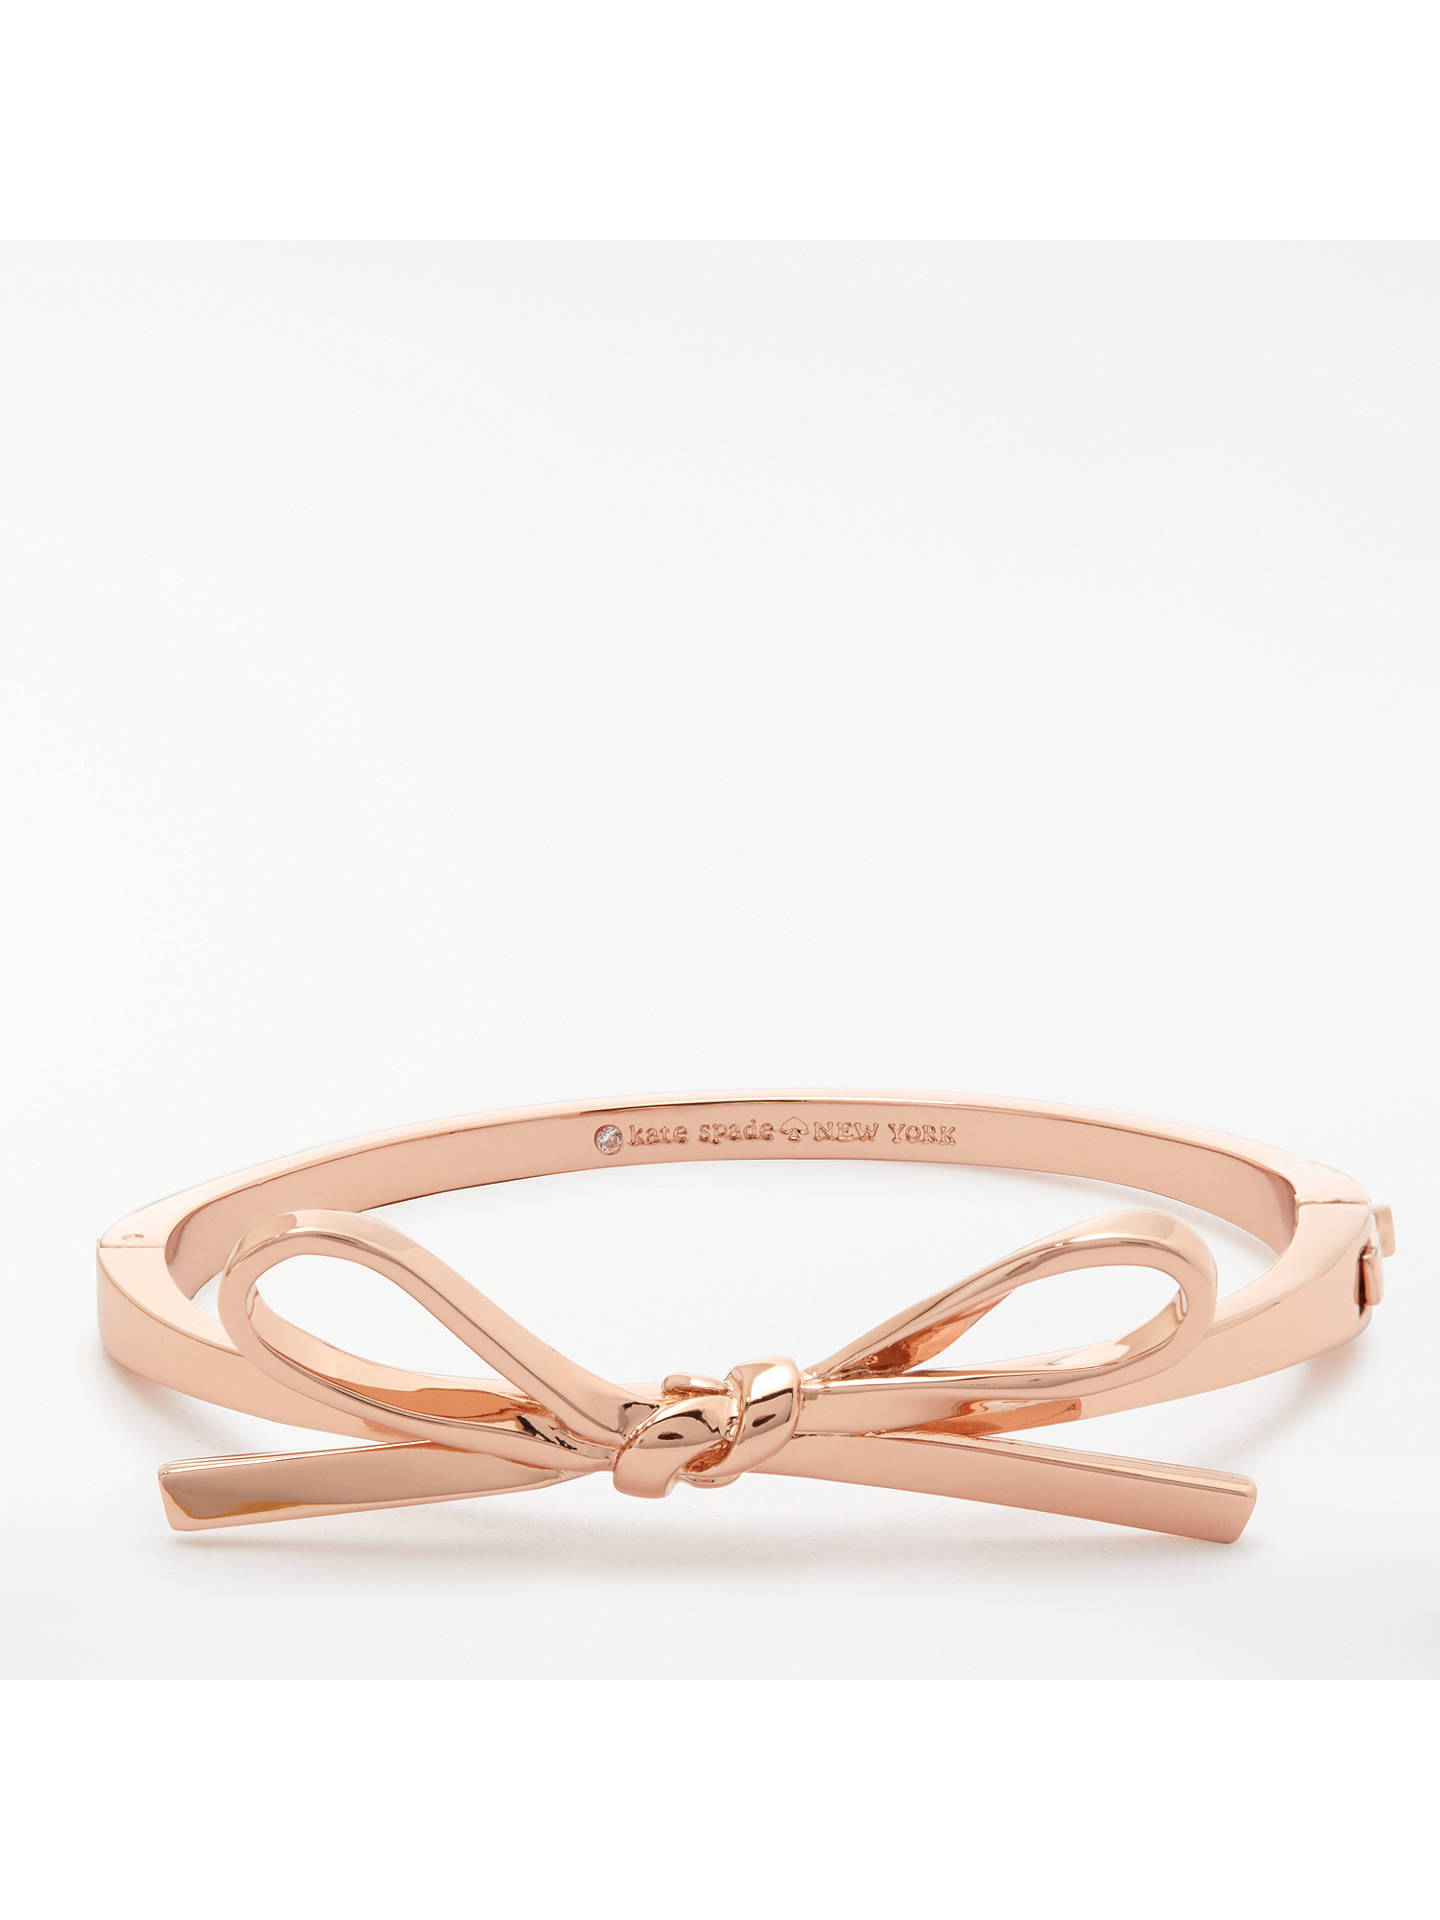 Kate Spade New York Bow Bangle Rose Gold Online At Johnlewis